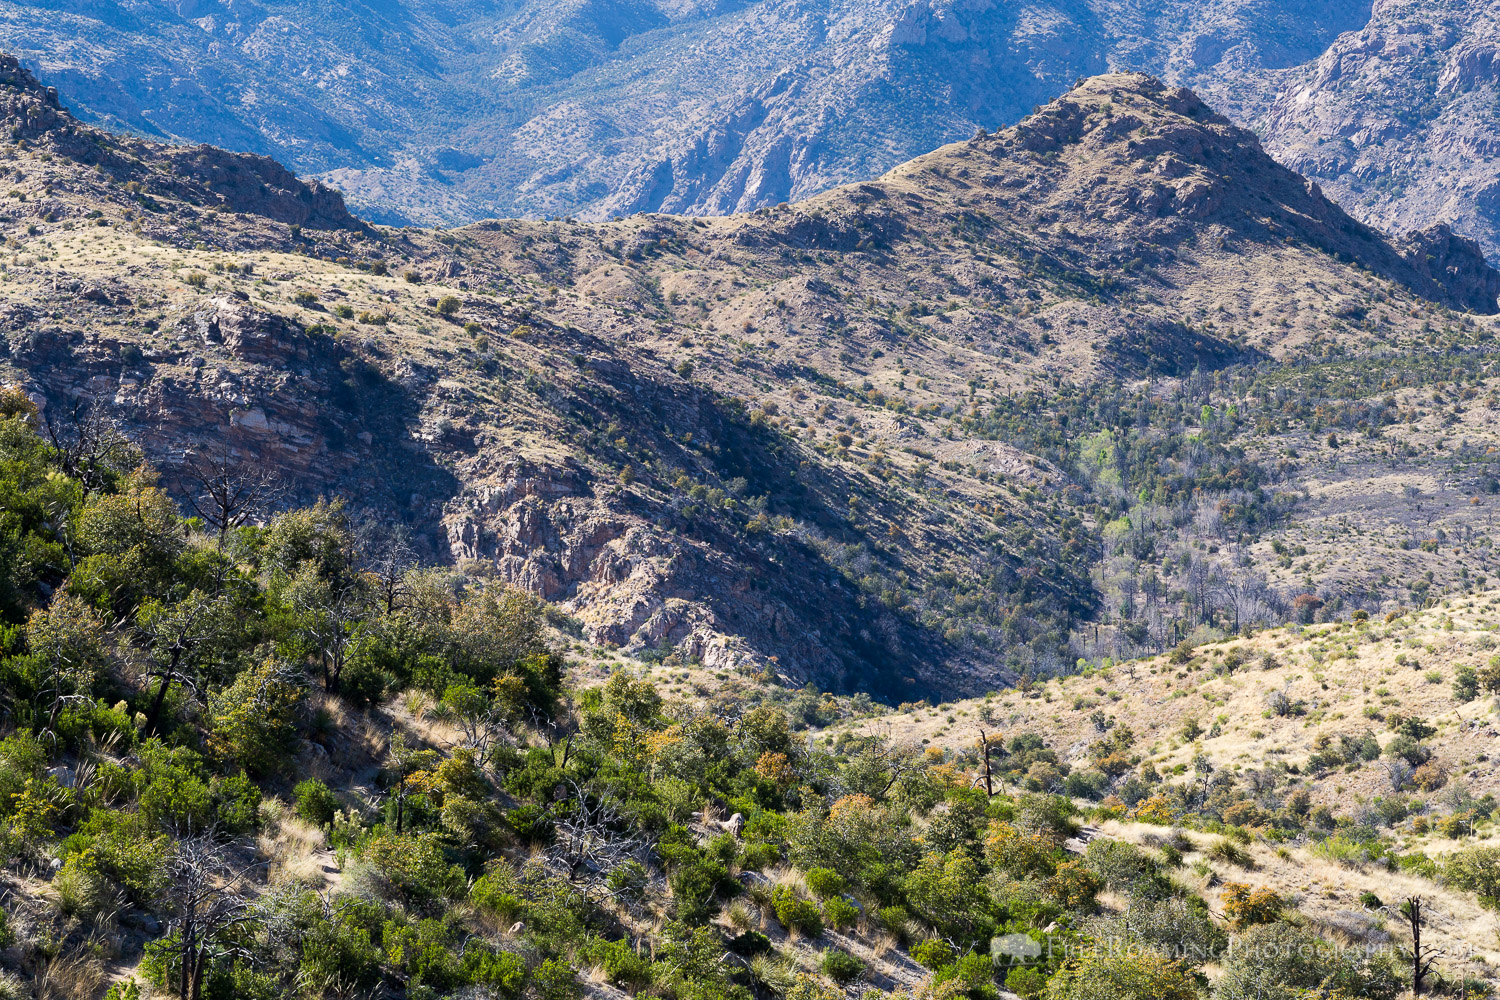 Day 12: Redington Road to Sycamore Creek